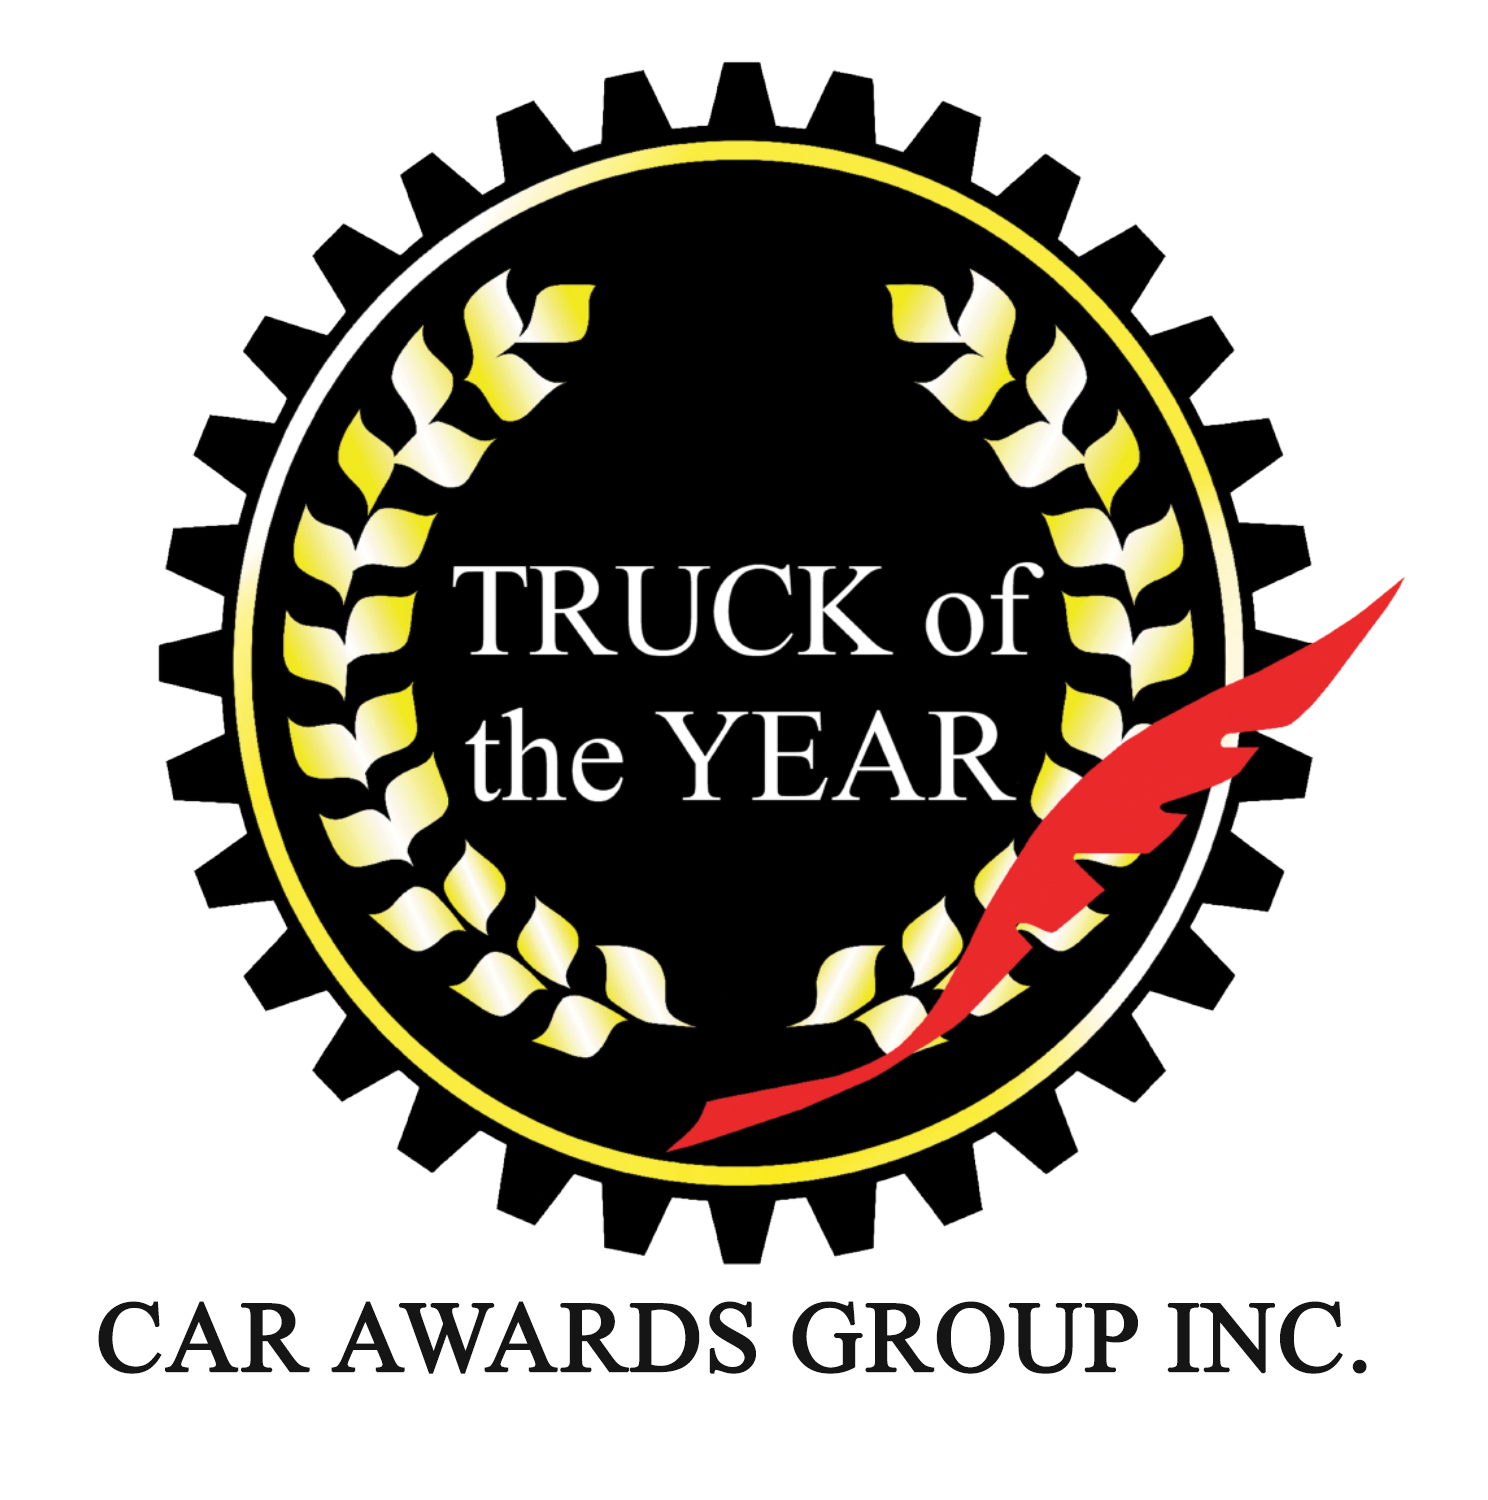 TRUCK of the YEAR